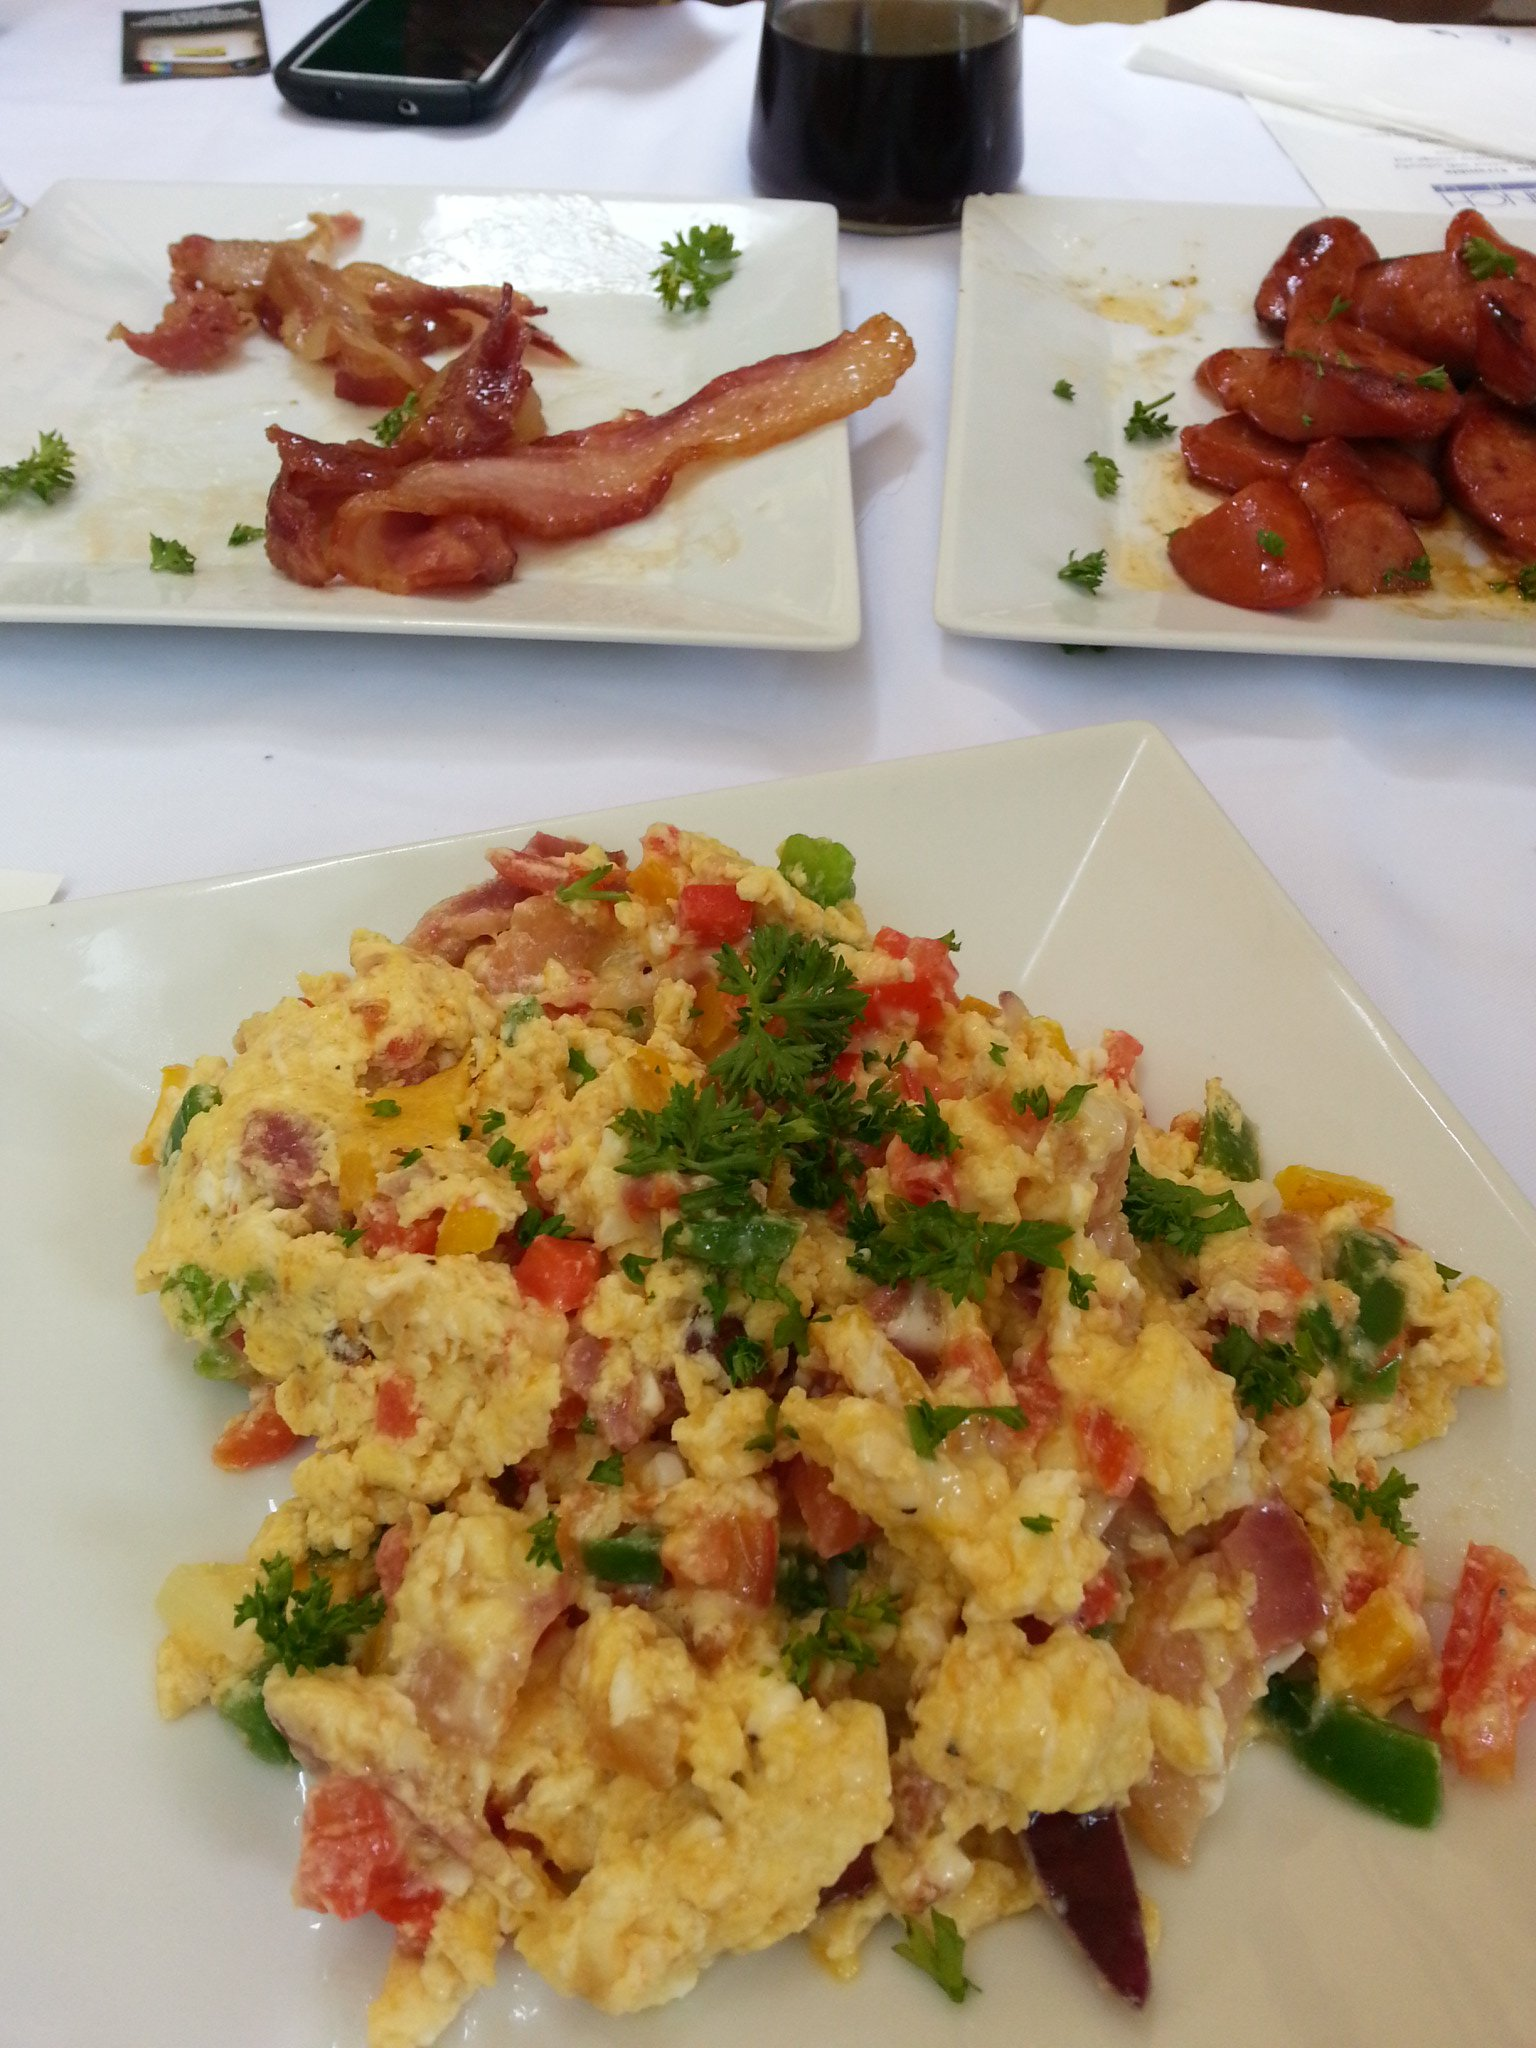 Power Scramble, with sides of bacon and sausage